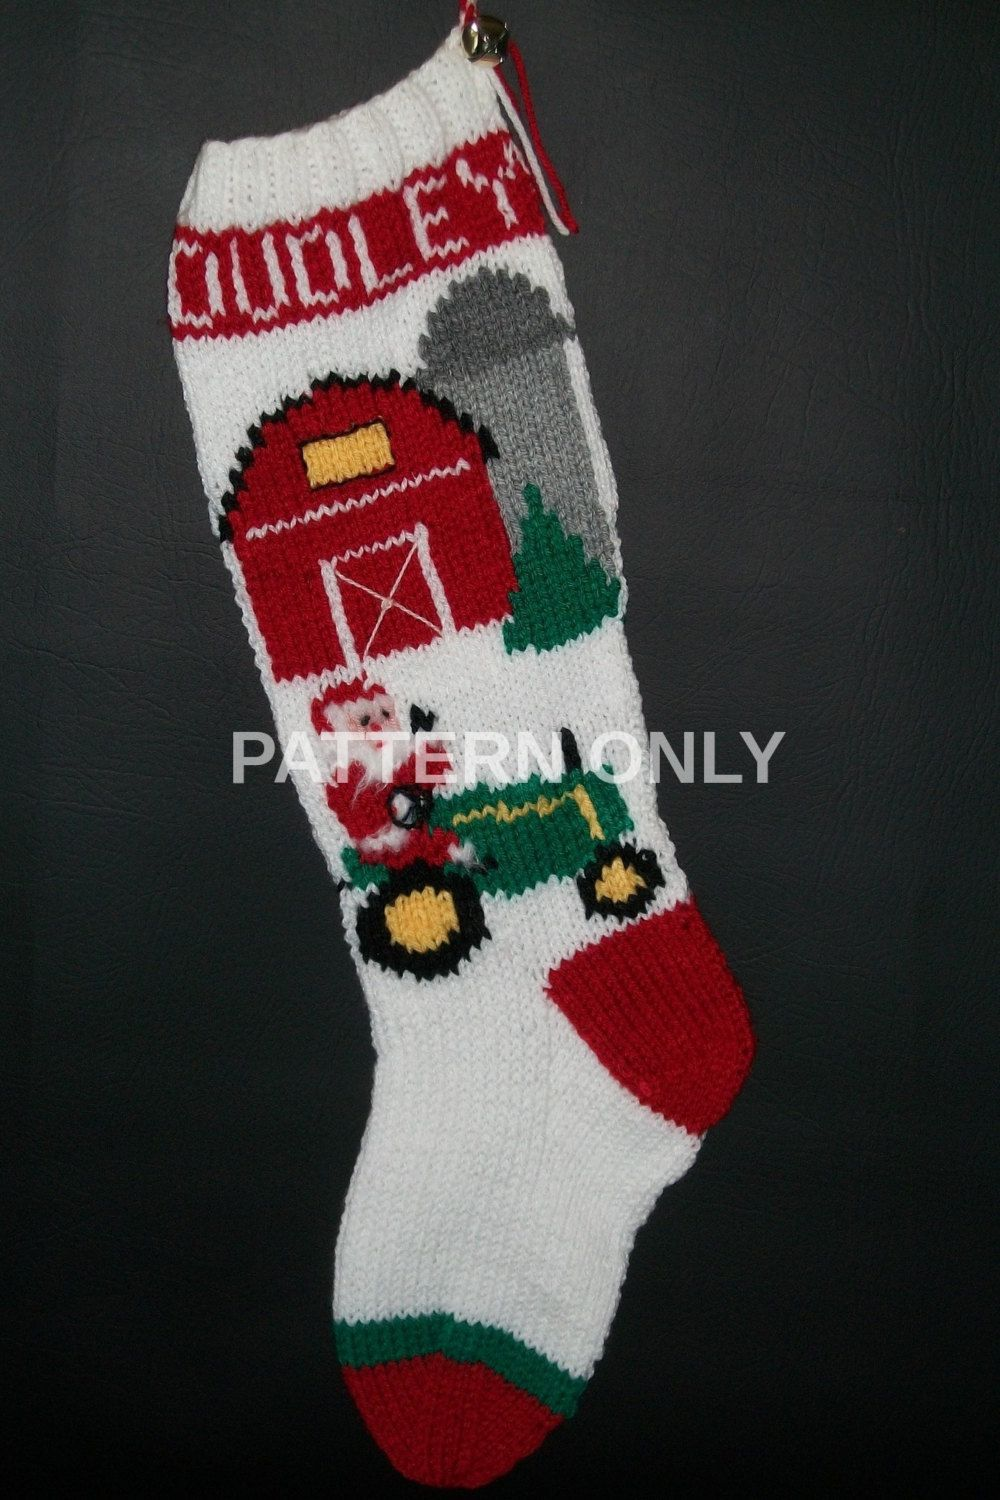 Pdf pattern only hand knitted santa on a tractor christmas pdf pattern only hand knitted santa on a tractor christmas stocking by knottyneedleworker on etsy bankloansurffo Choice Image